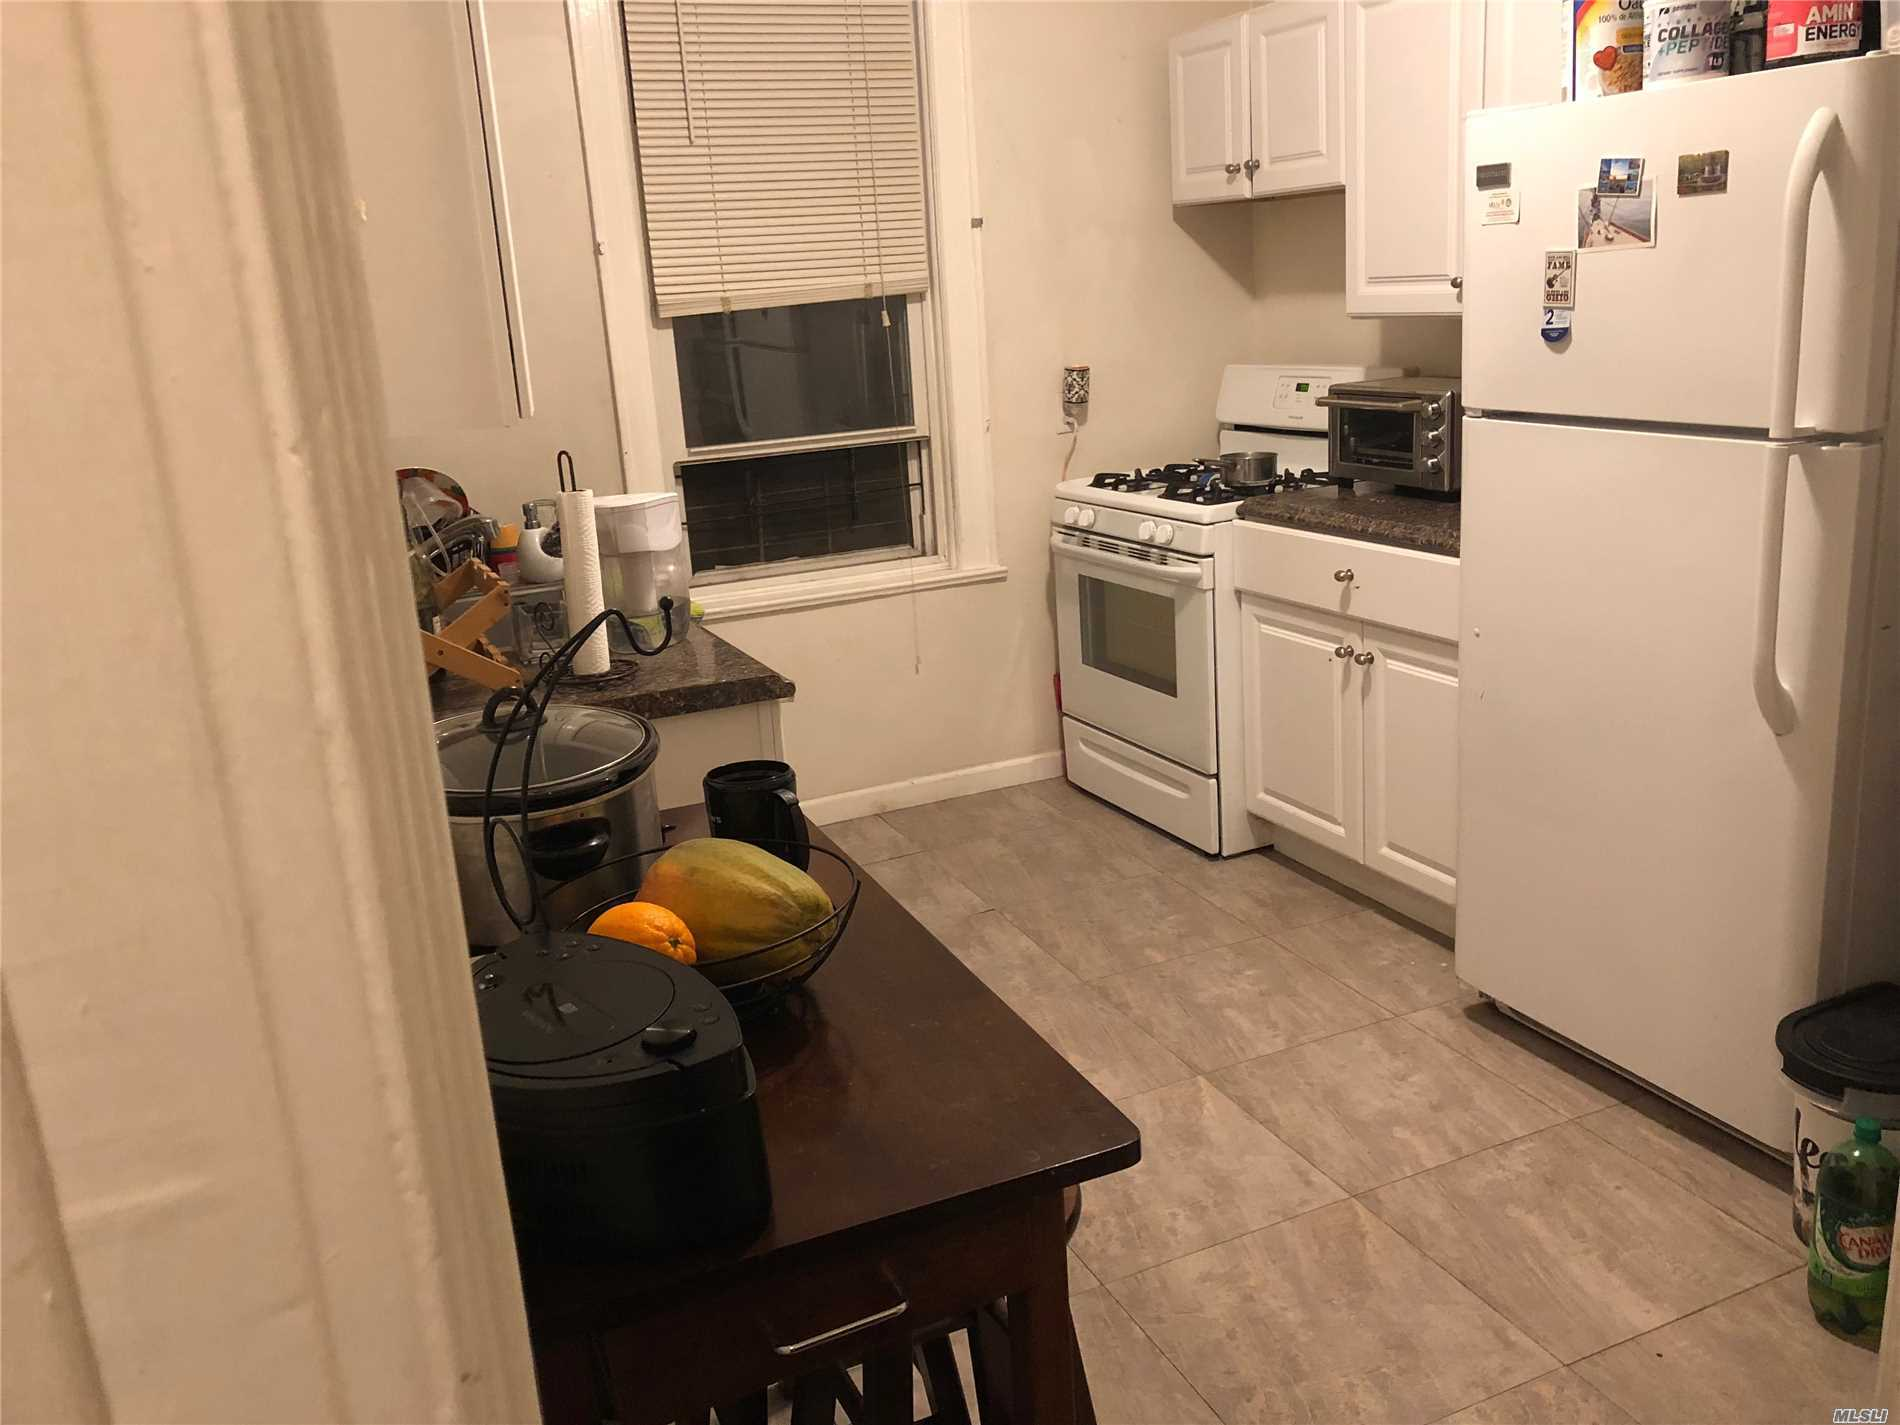 1st Floor Apartment Facing Rear Yard, Renovated Apartment With New Bath And Kitchen. Hardwood Floors Throughout. Break Fast Nook Outside Of Kitchen. Quiet 6 Family House. 1 Block From Bus Stop. Close To All Shopping And Other Transportation.